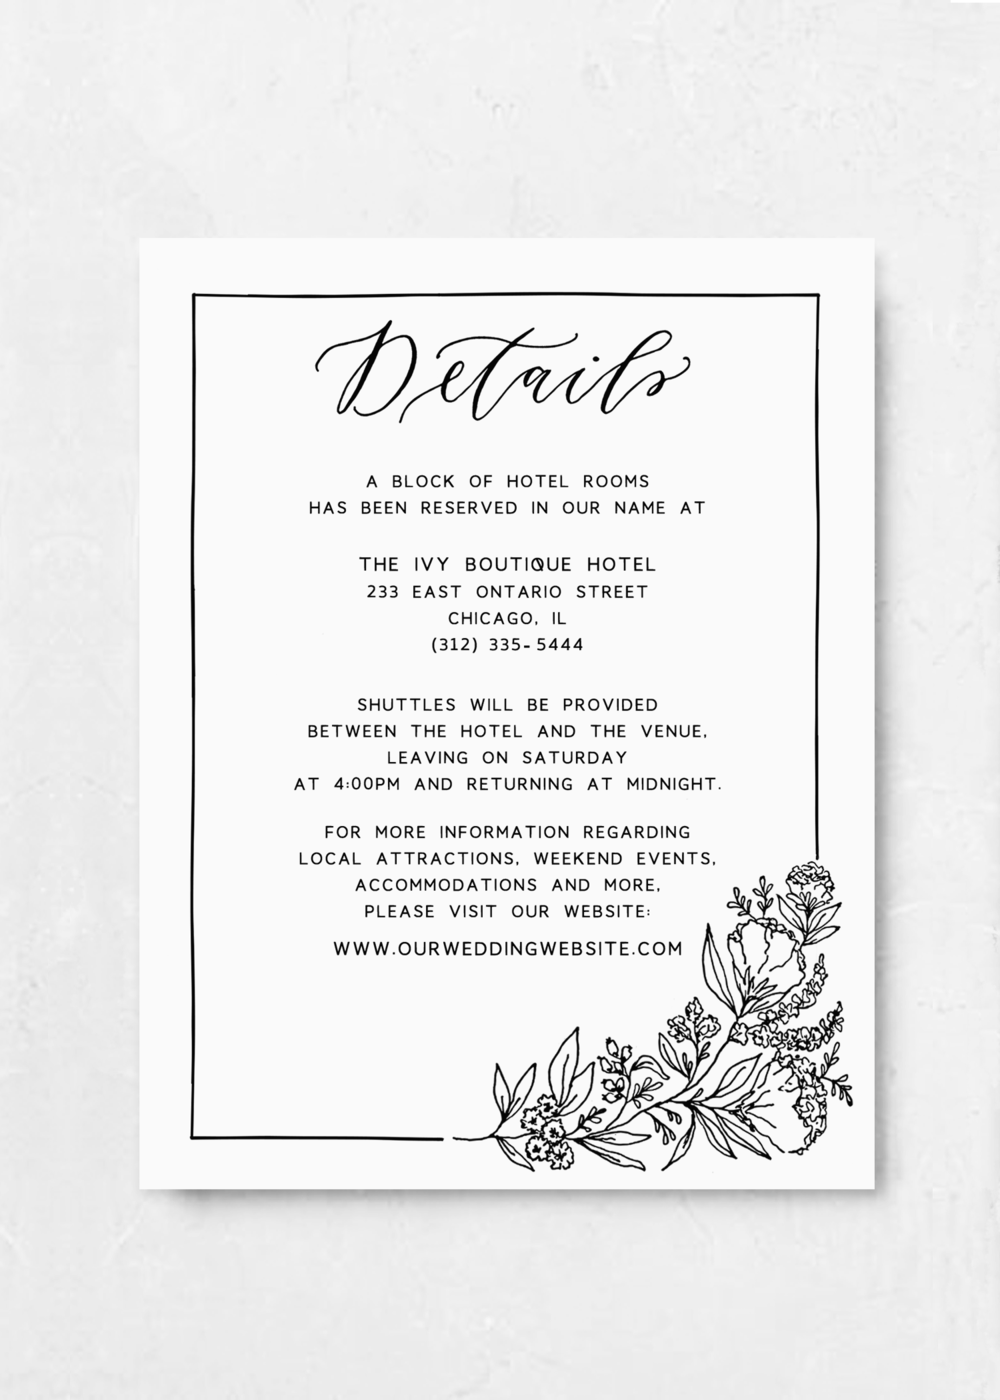 Info Card Black and White Floral Illustration Wedding Invitation